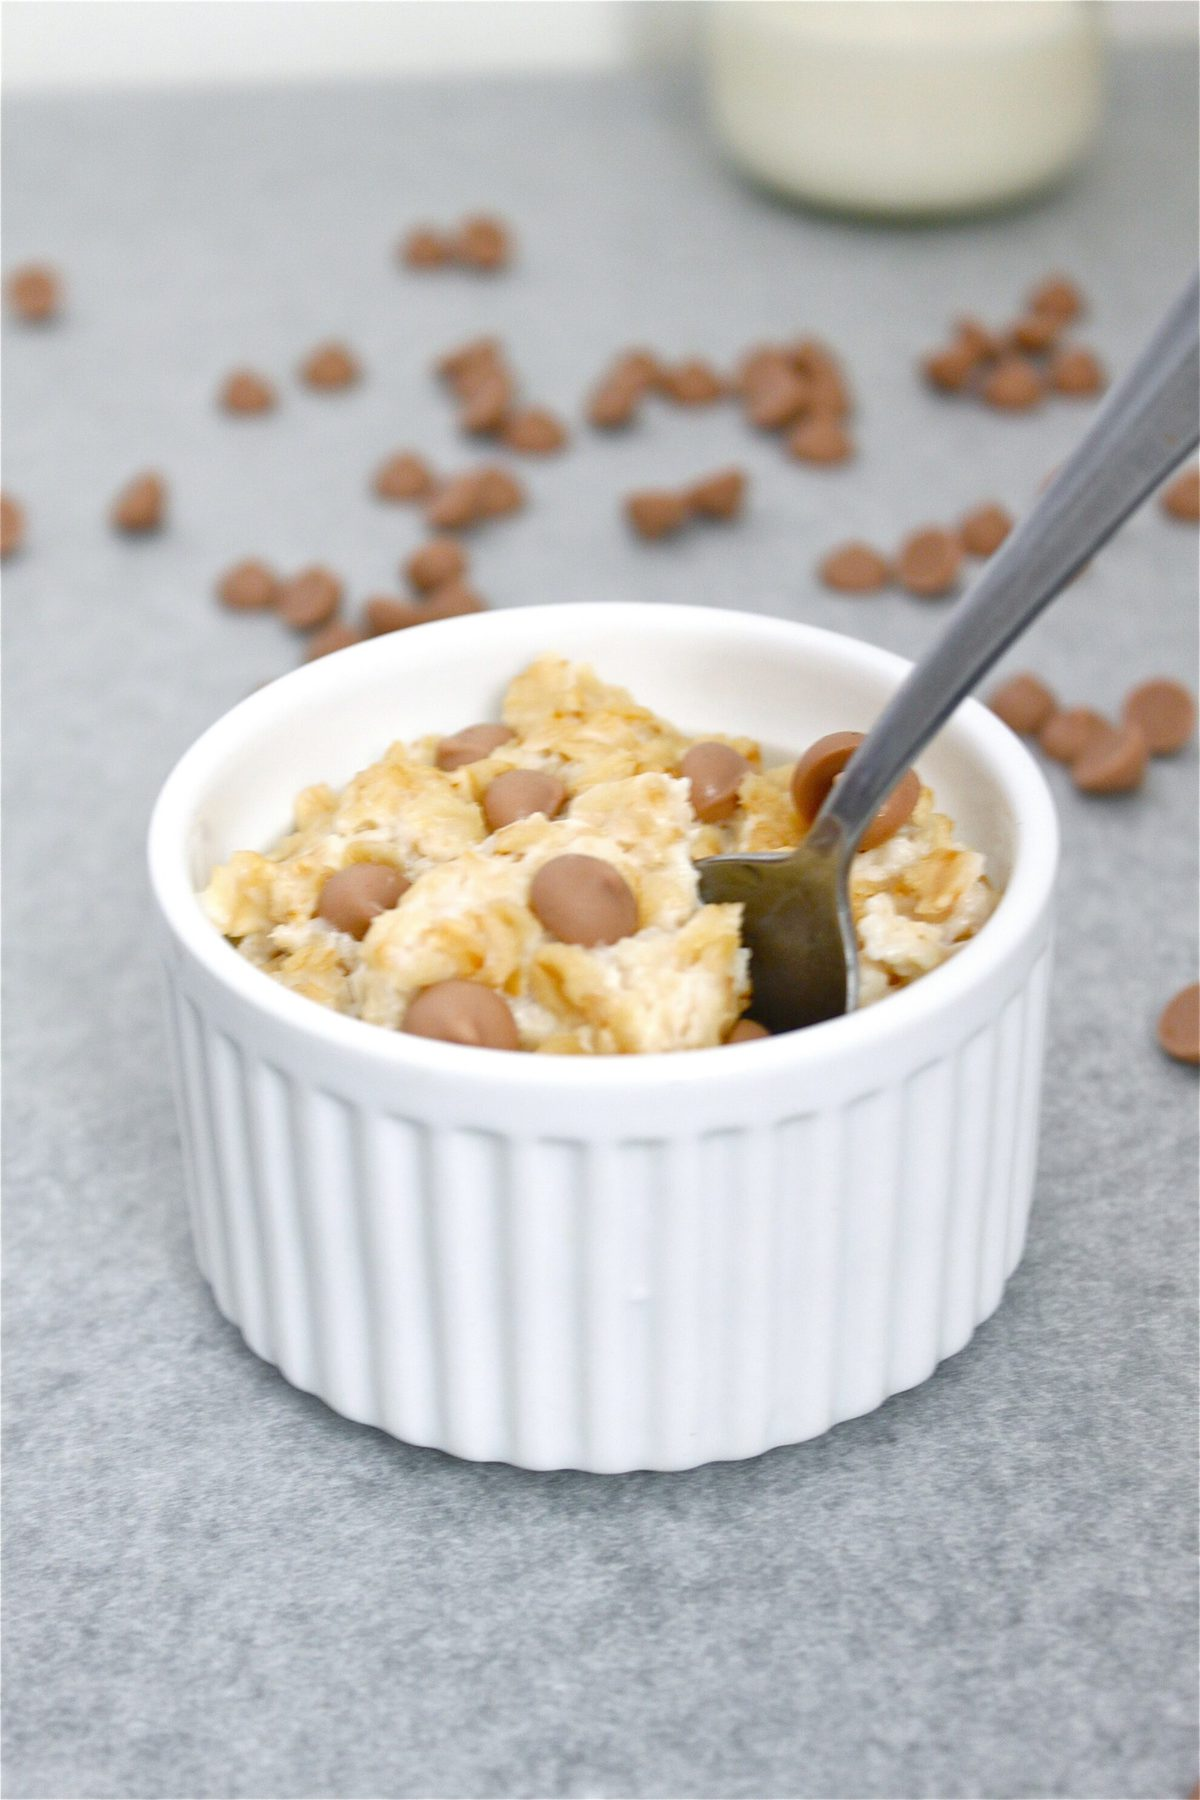 Caramel Cookie Dough Oatmeal- The taste and texture with a healthy twist! Vegan, gluten free and low sugar!